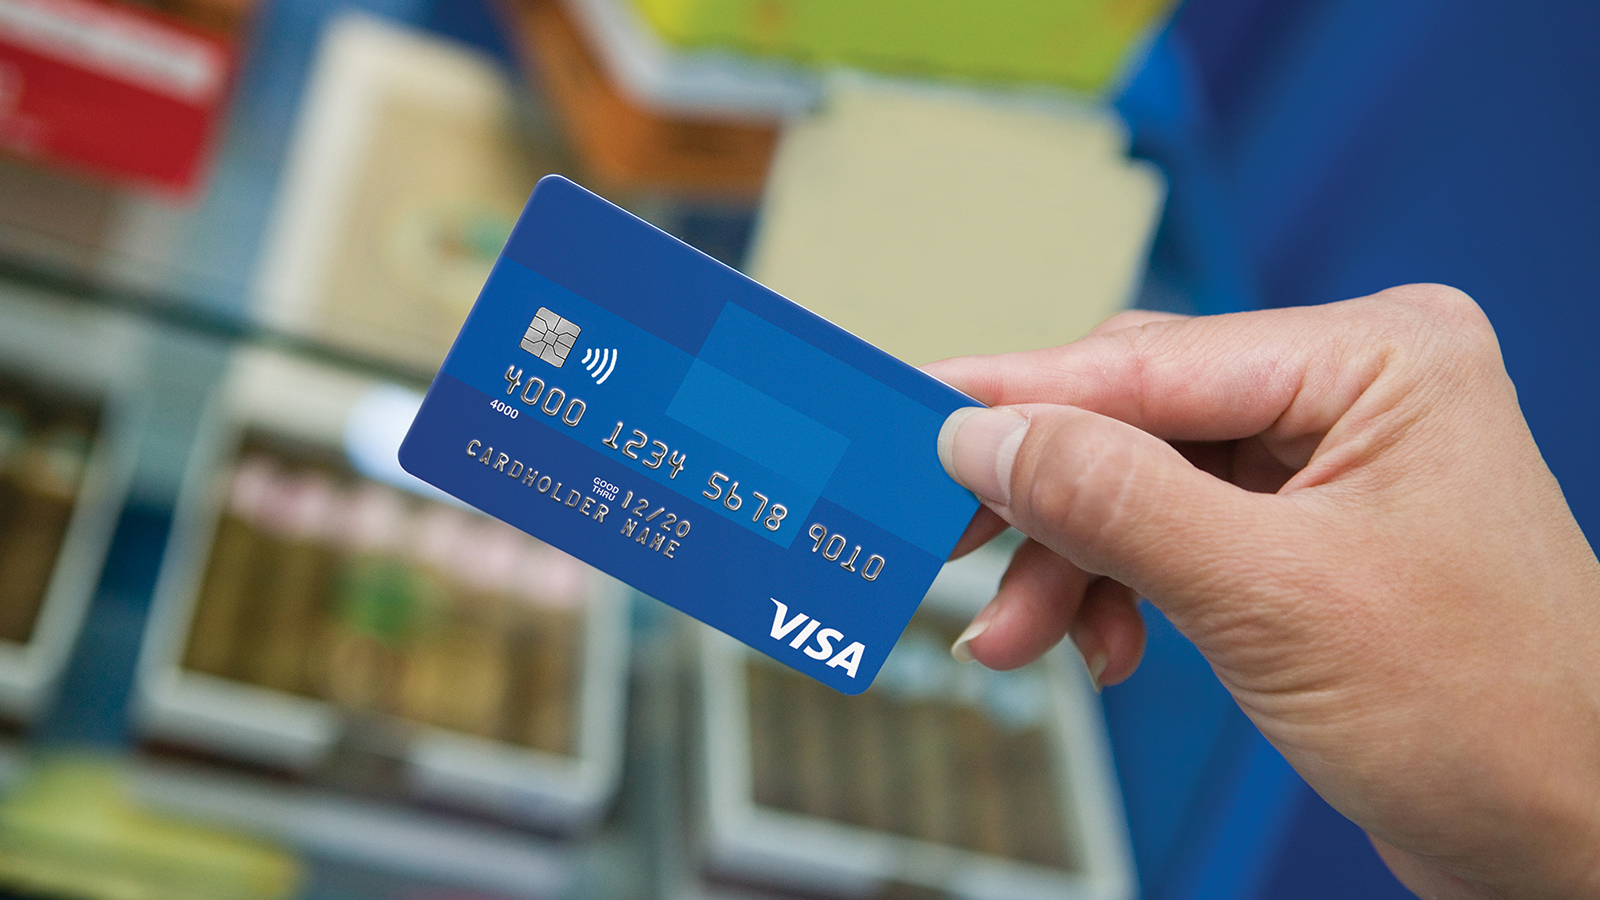 A close-up of a hand holding a Visa card.